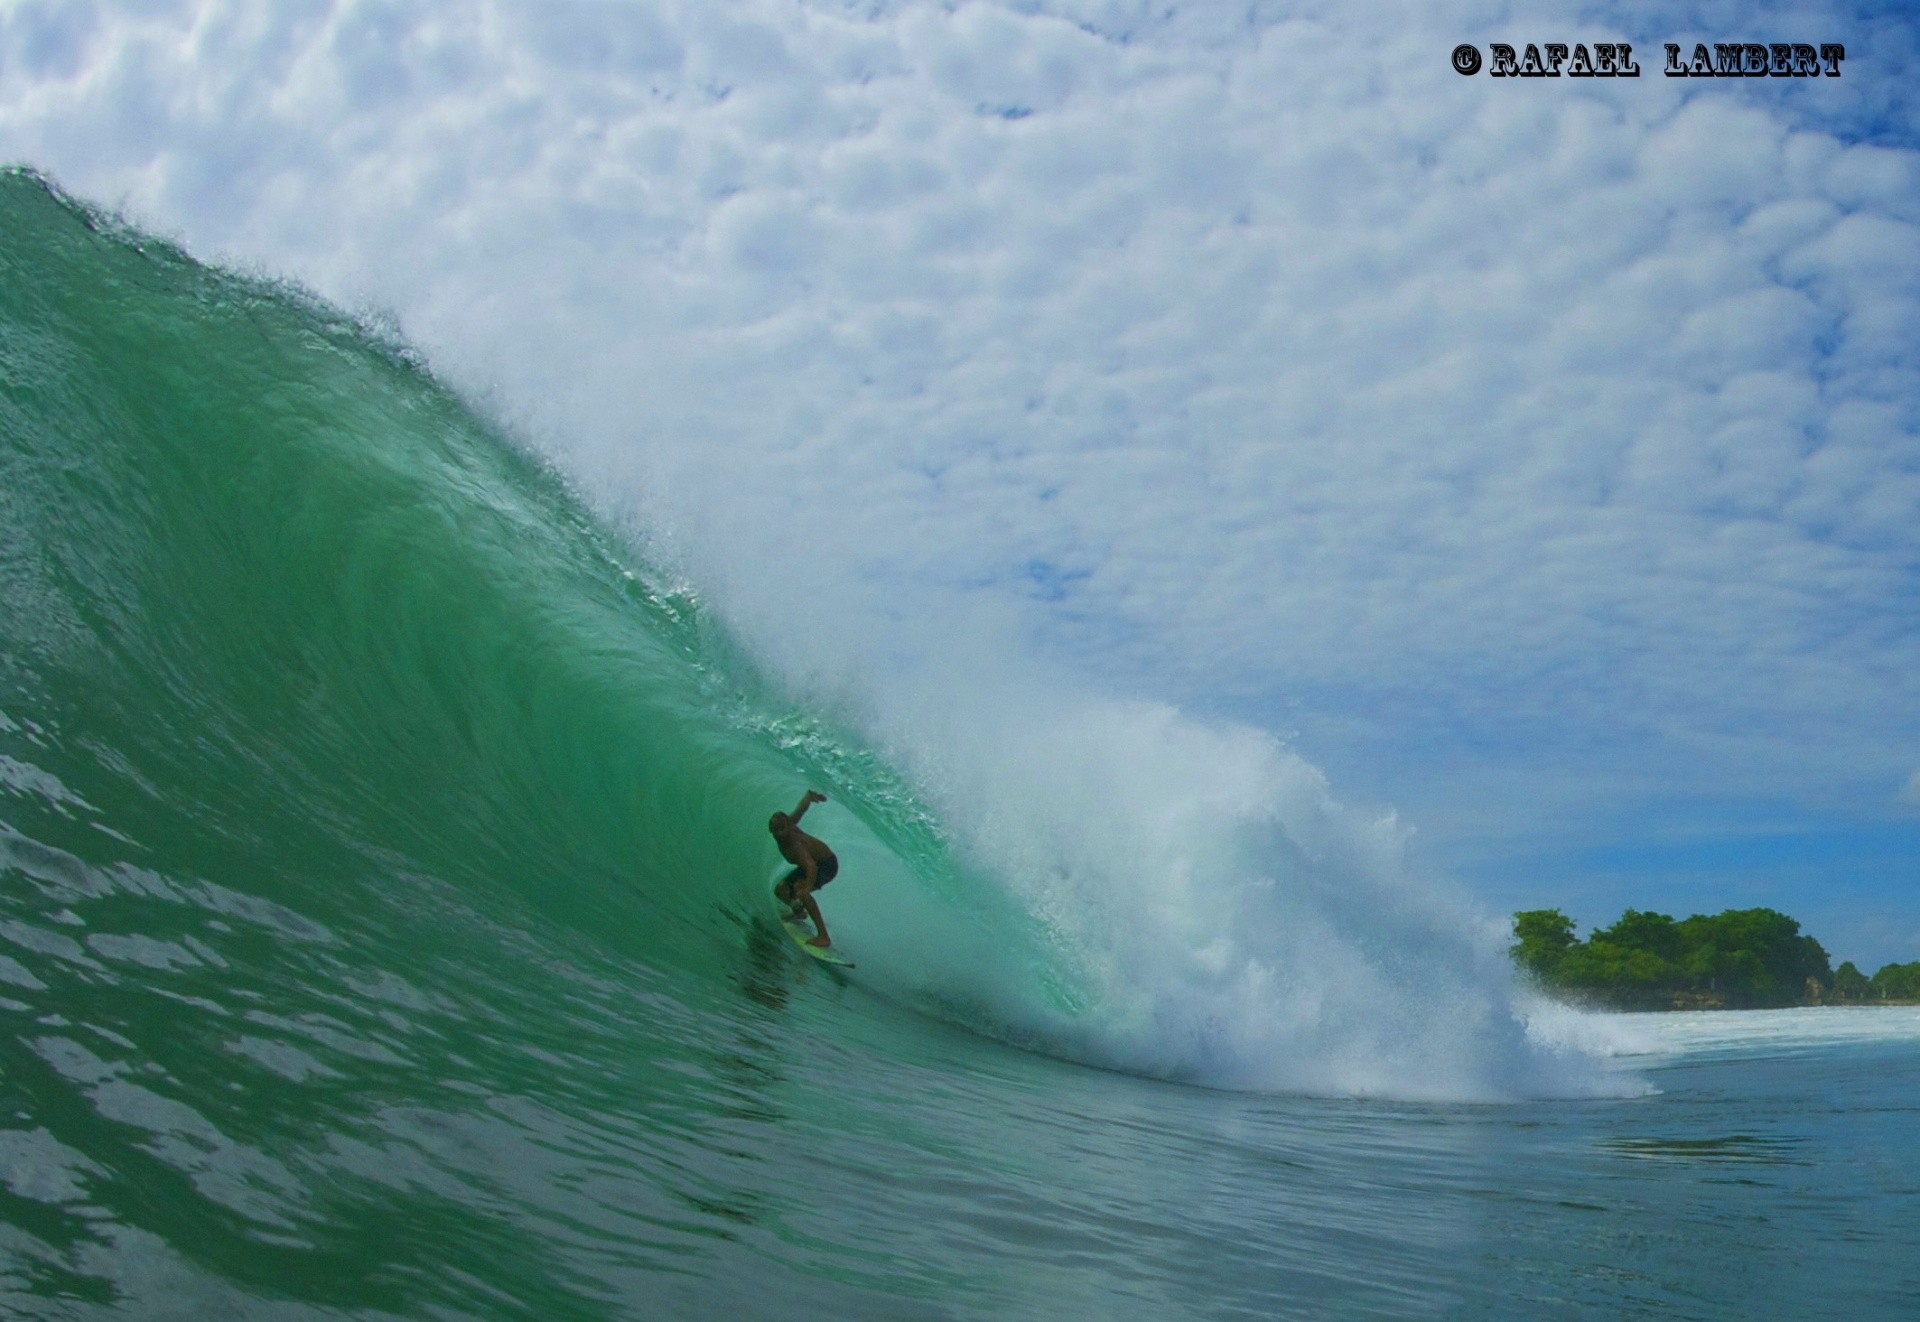 Rafael Lambert's photo of Nusa Dua